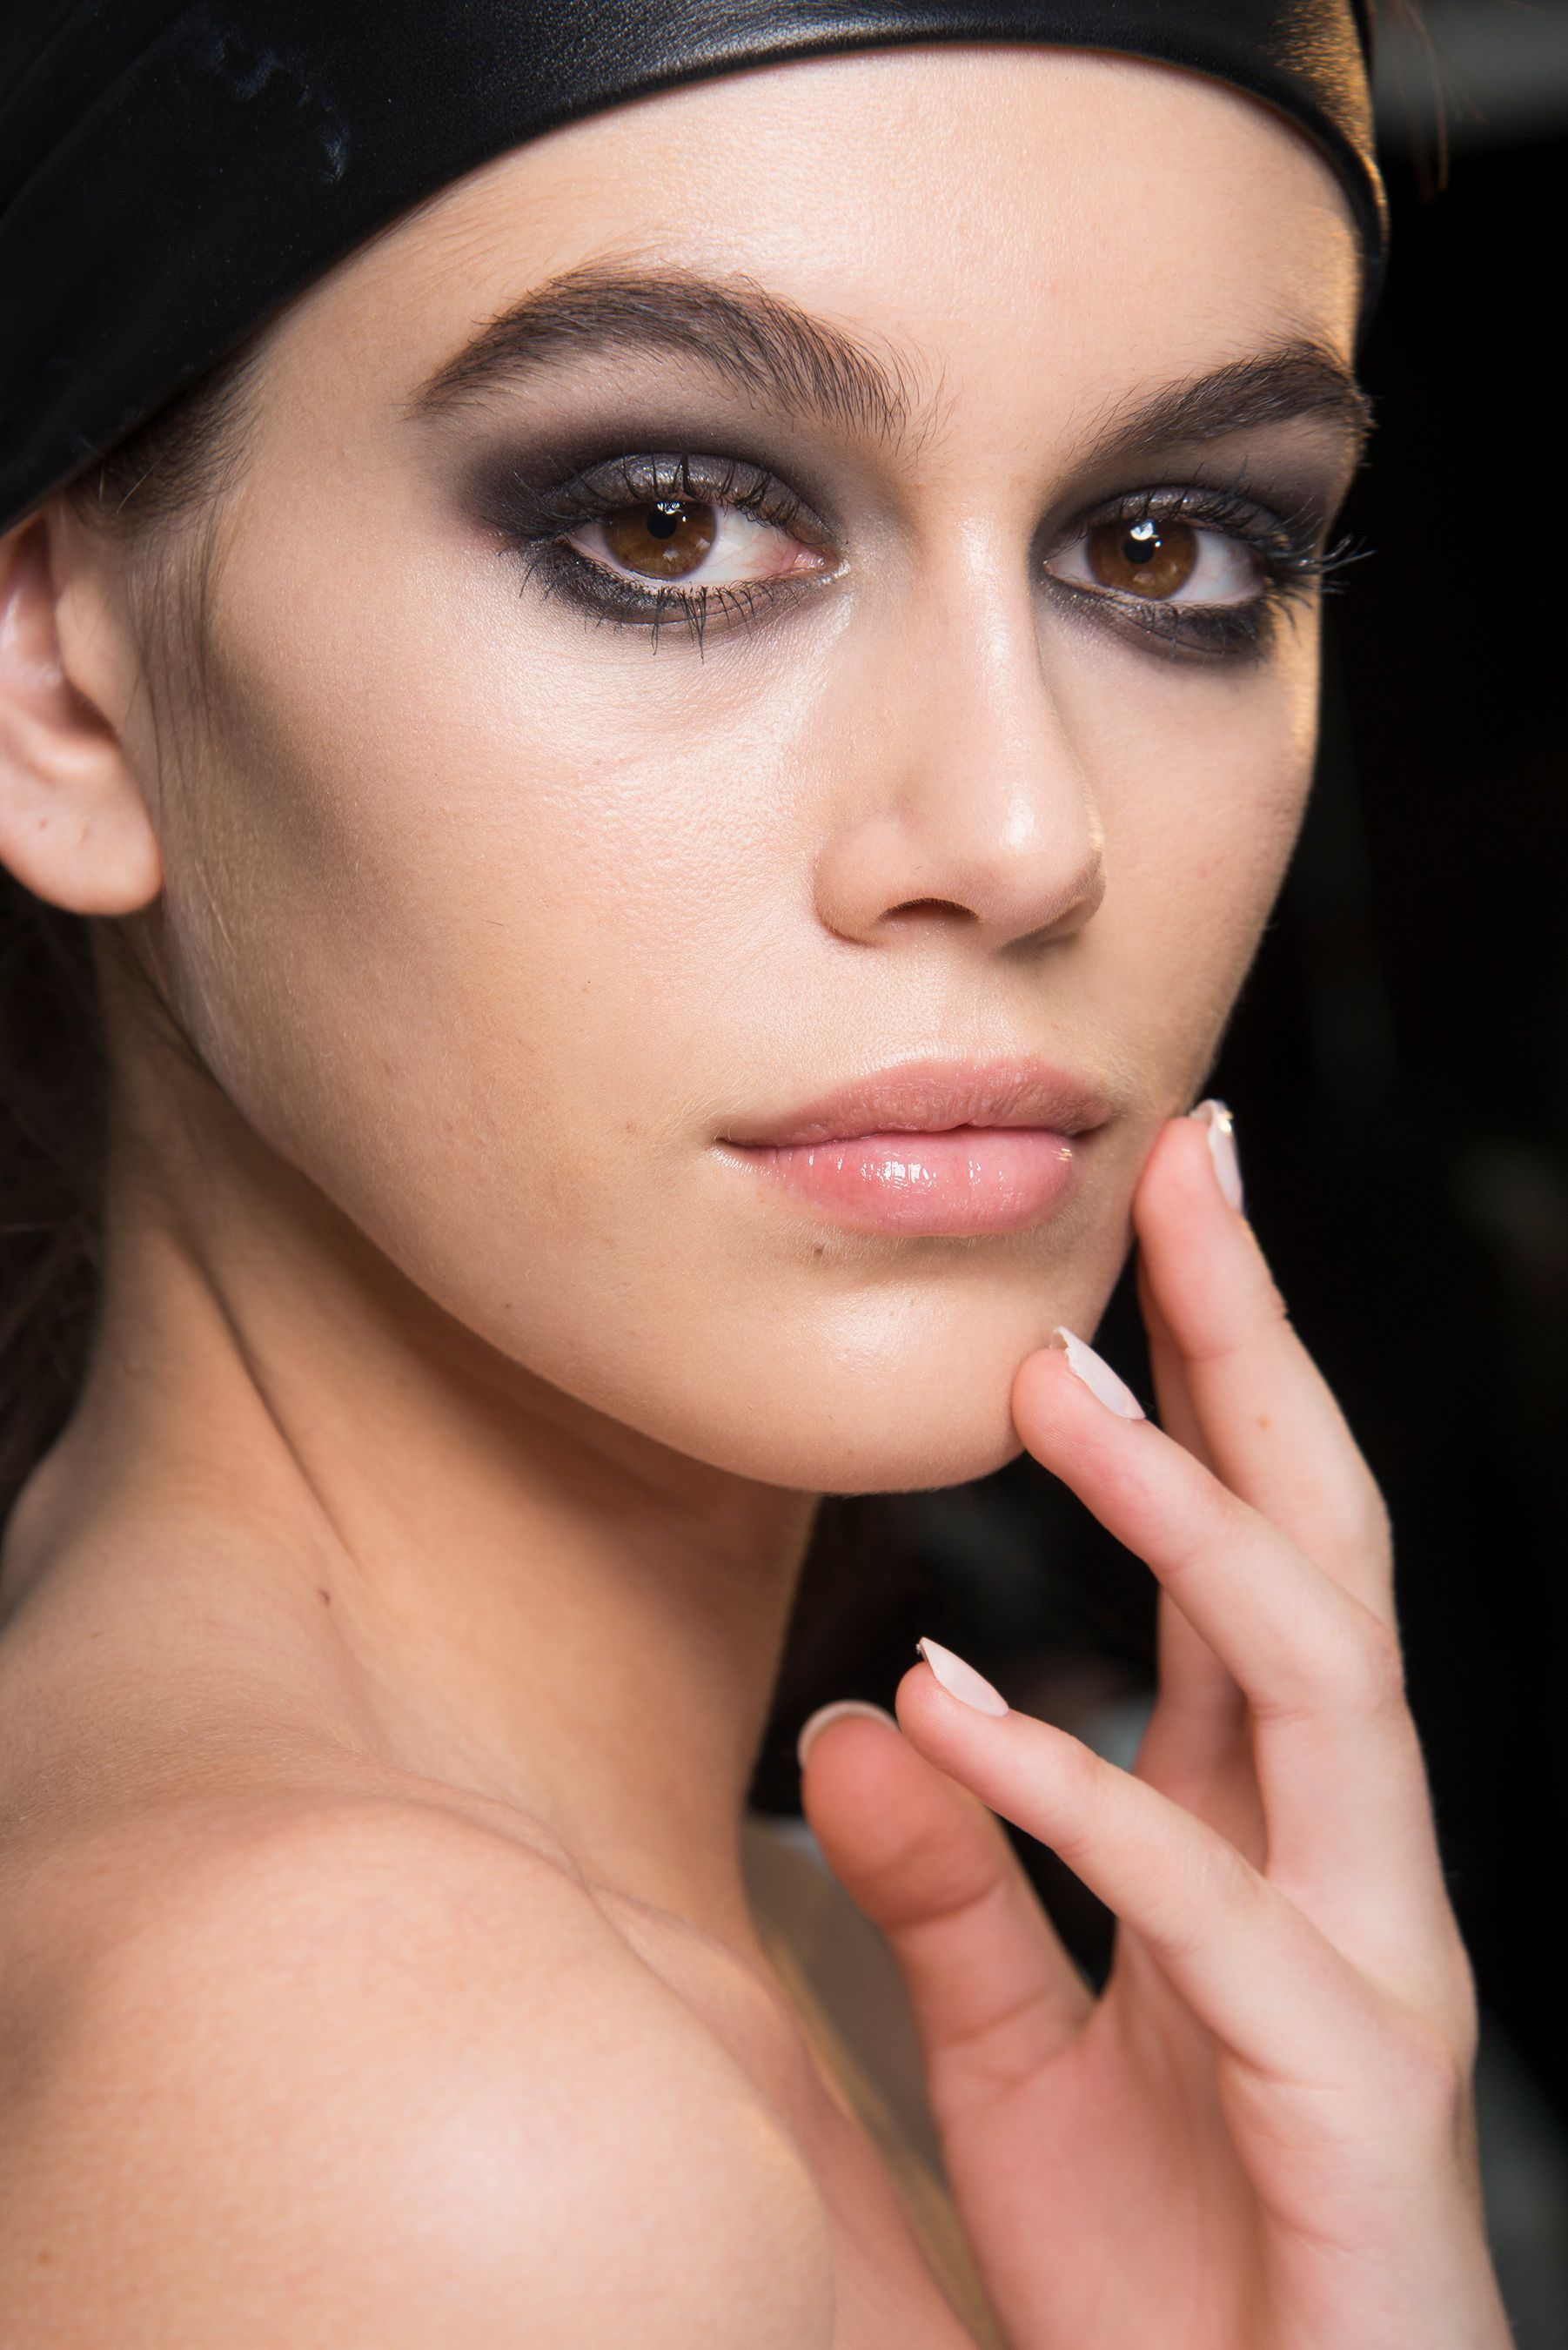 2019 year for girls- Makeup fall trends